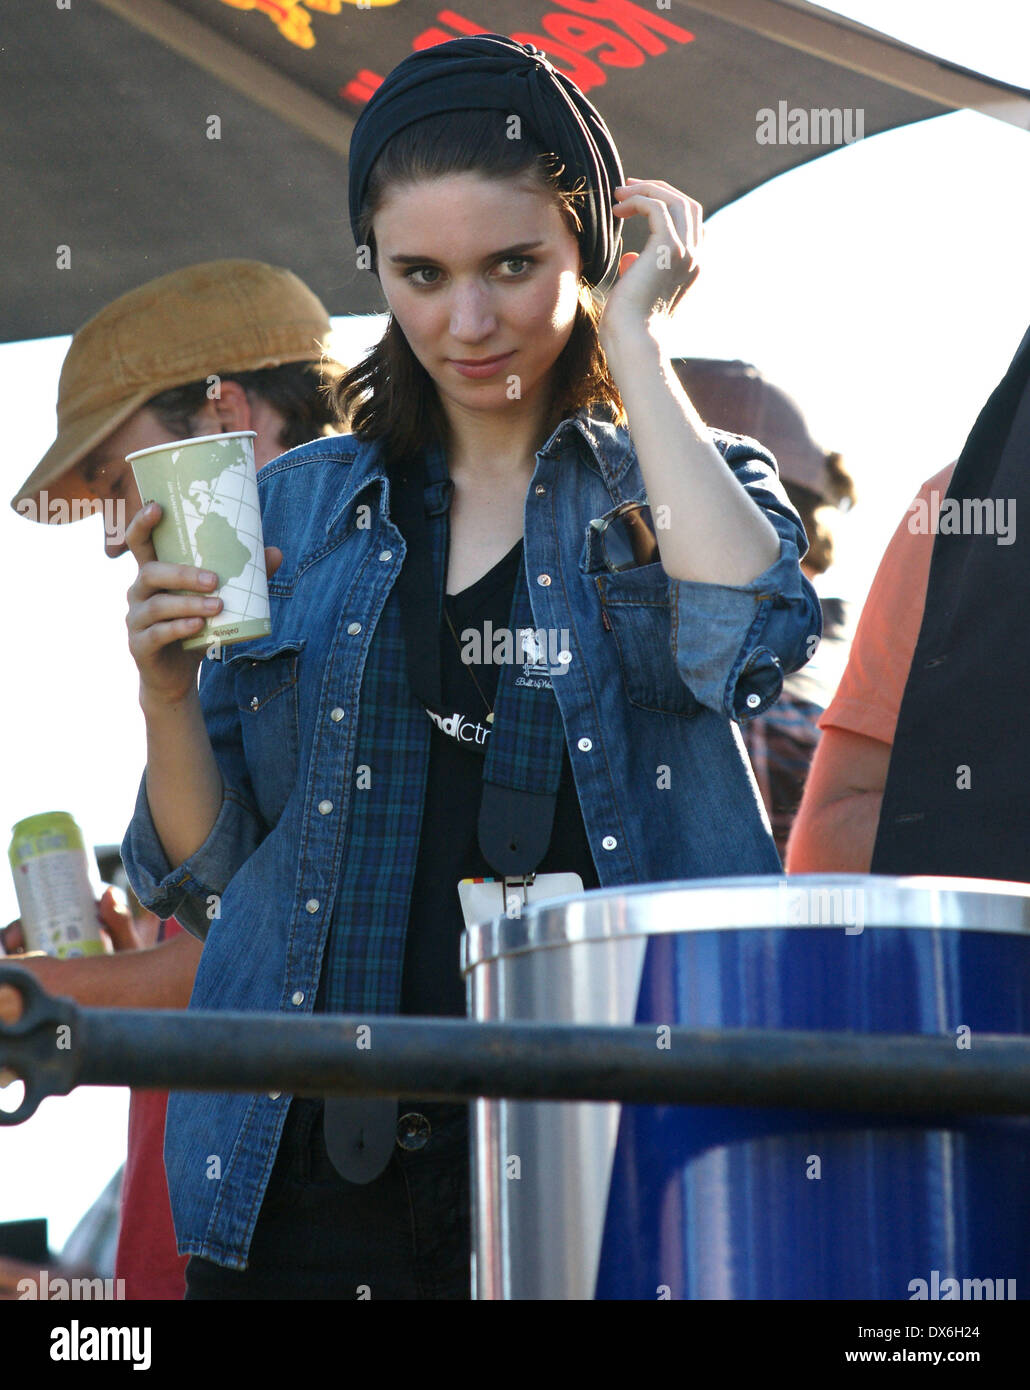 Rooney Mara on the set of 'Untitled Terrence Malick Project' at the Fun Fun Fun Fest Austin, Texas - 02.11.12 Featuring: Rooney Mara Where: United States When: 02 Nov 2012 - Stock Image